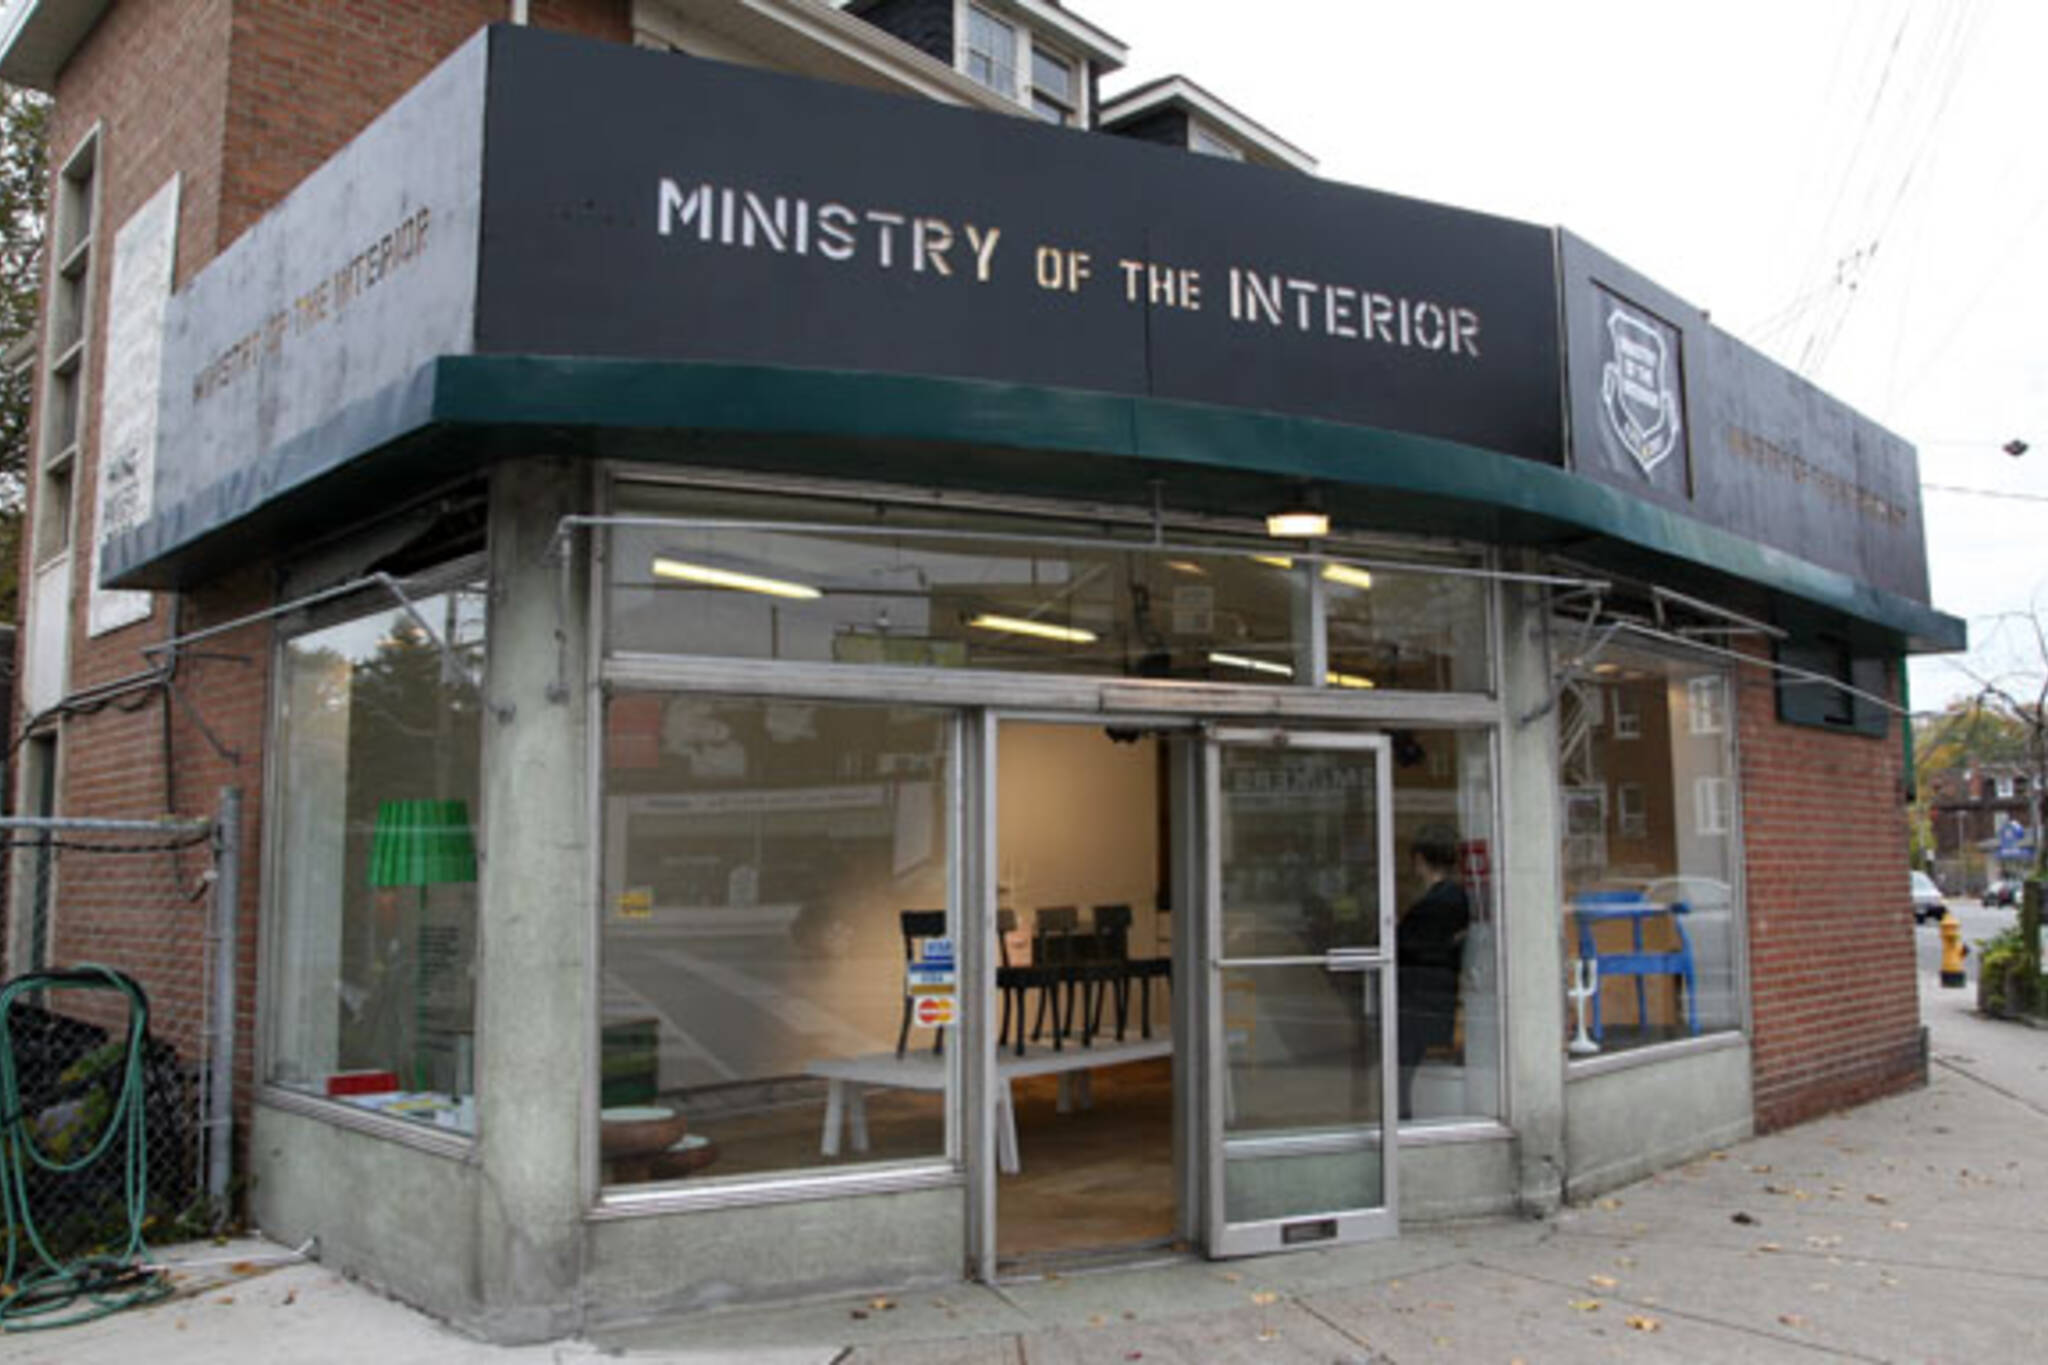 Ministry of the Interior Pop Up Store